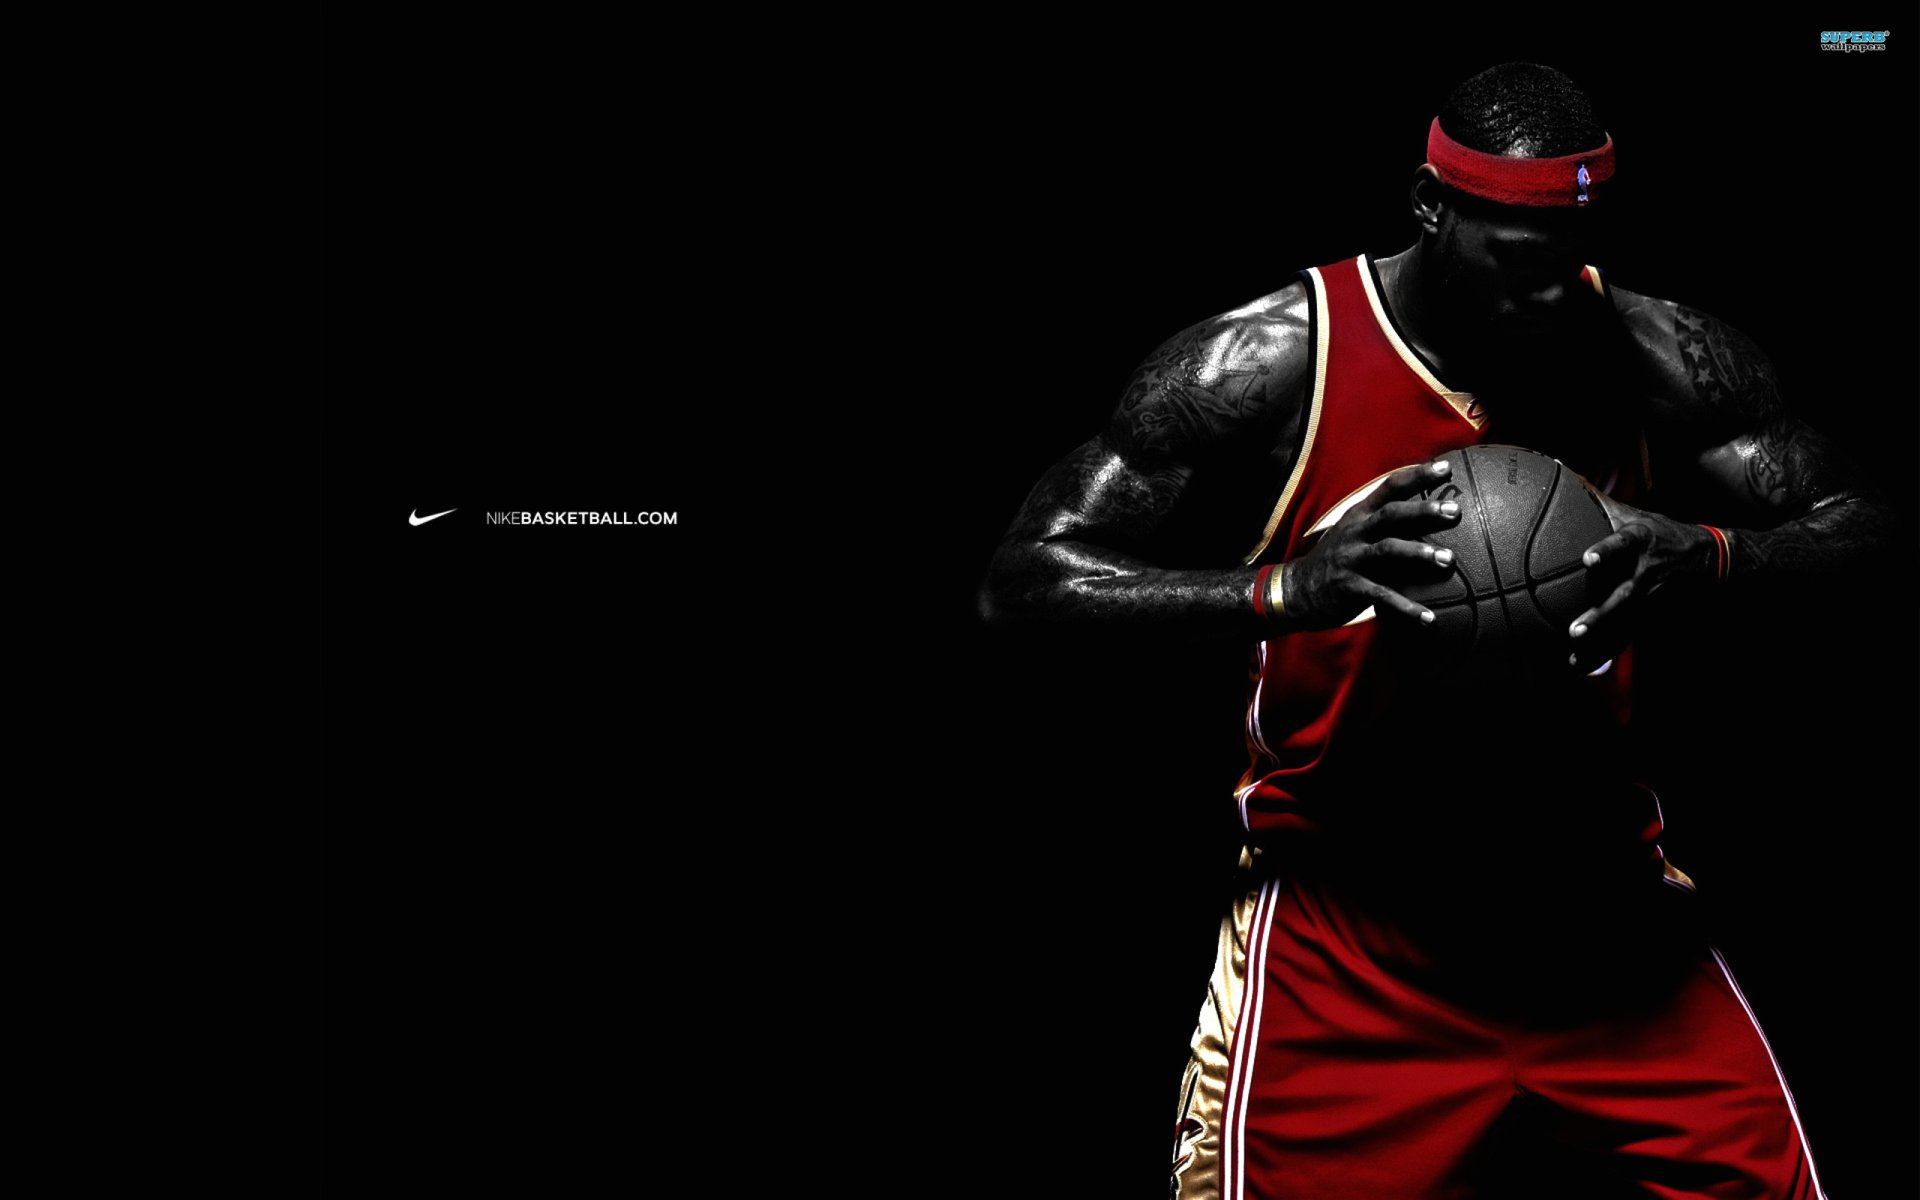 Awesome Sports Wallpaper